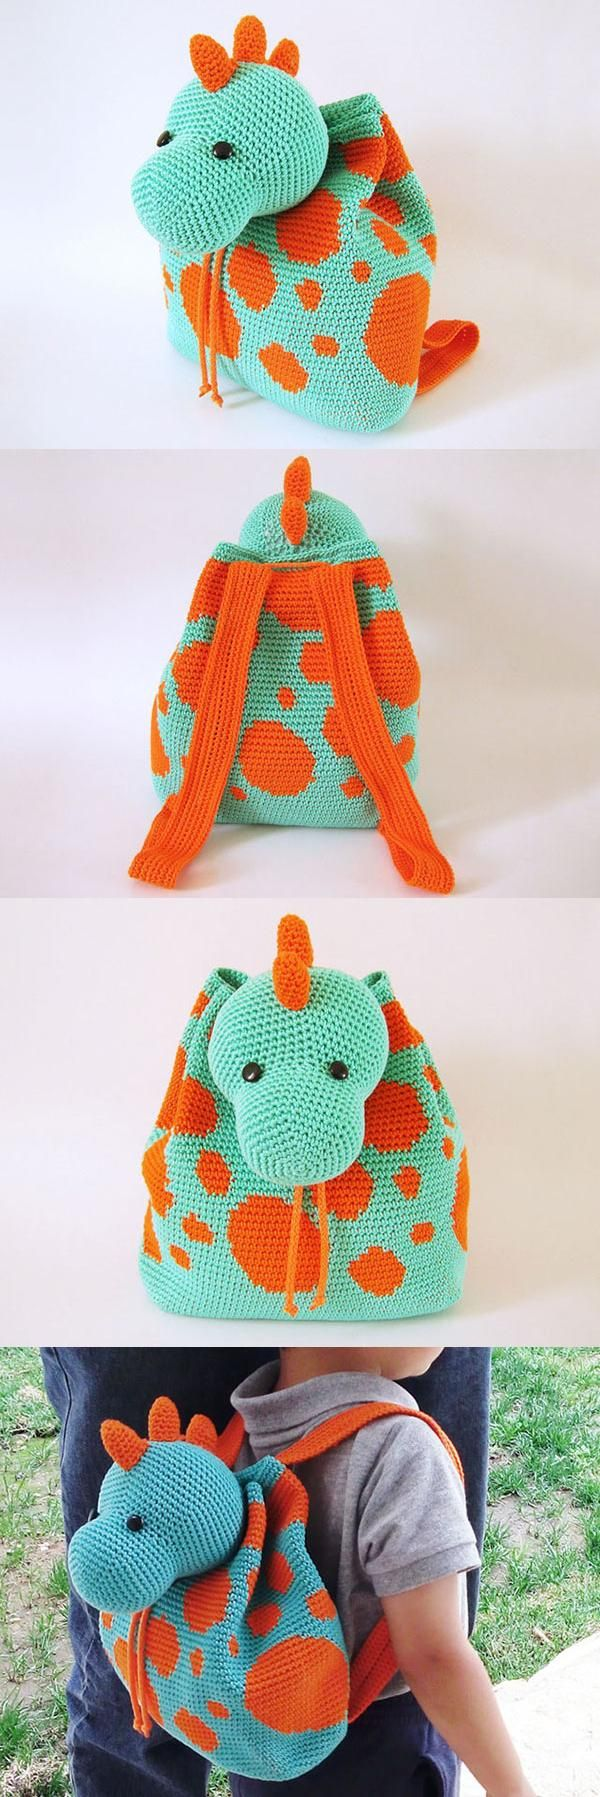 Dino Backpack Crochet Pattern                                                                                                                                                     Más                                                                                                                                                                                 Más